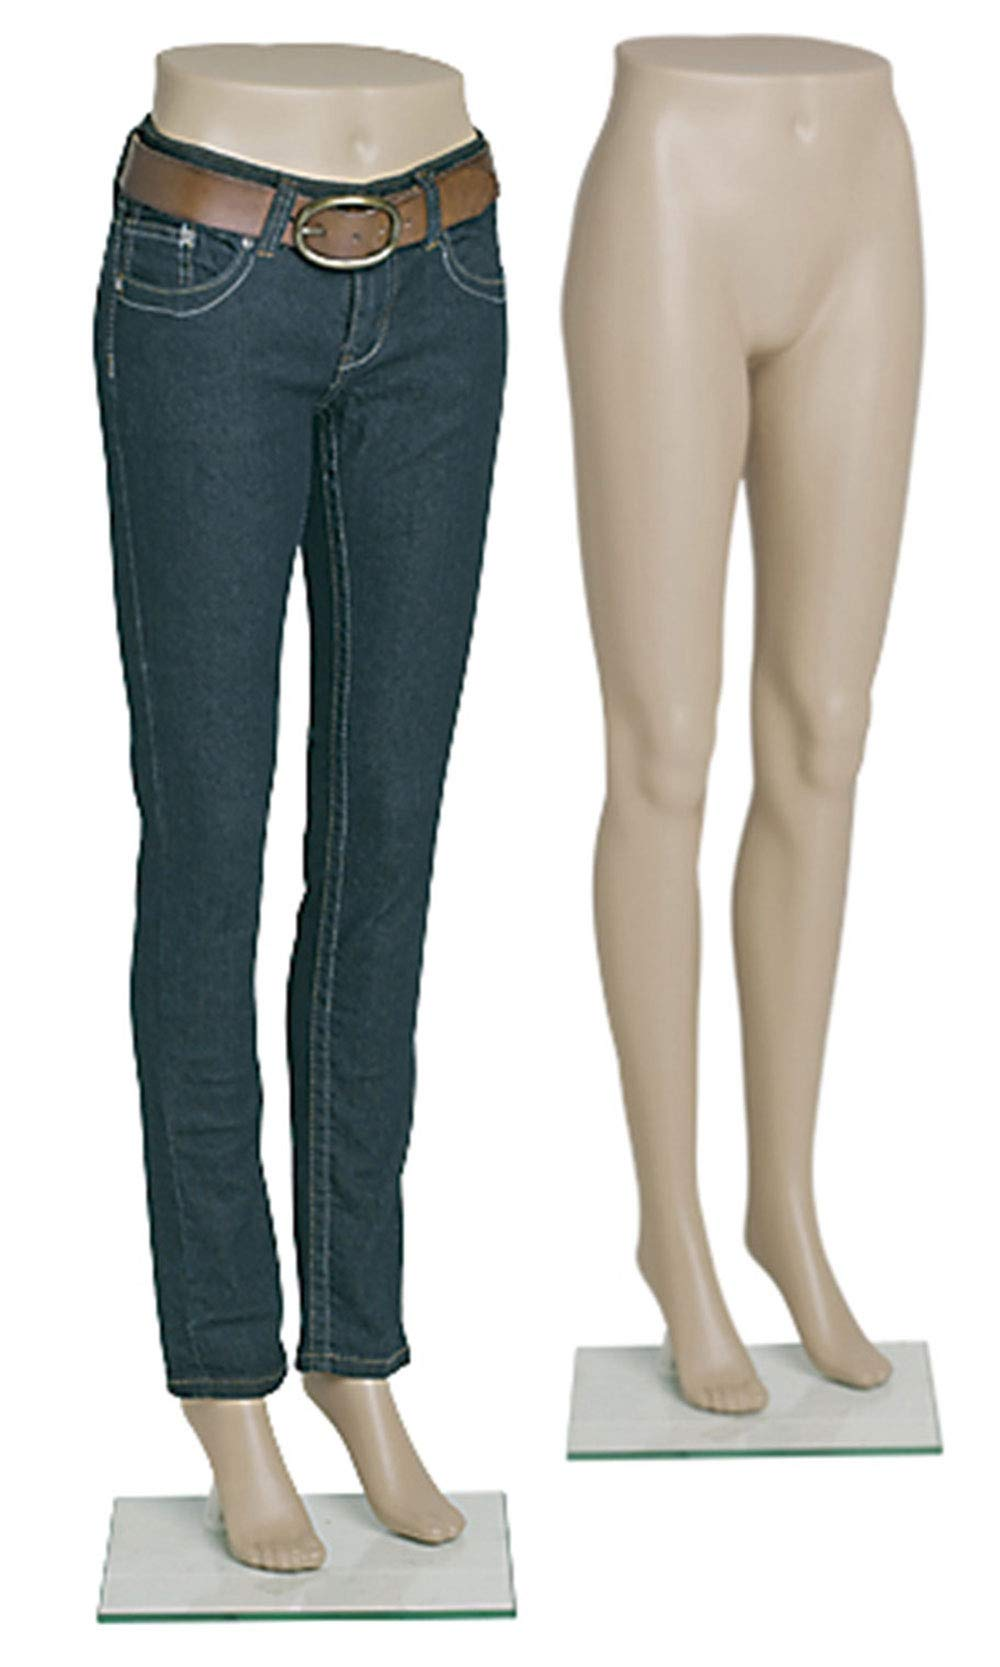 Female Plastic Mannequin Leg Form - Height 43'' - with Base